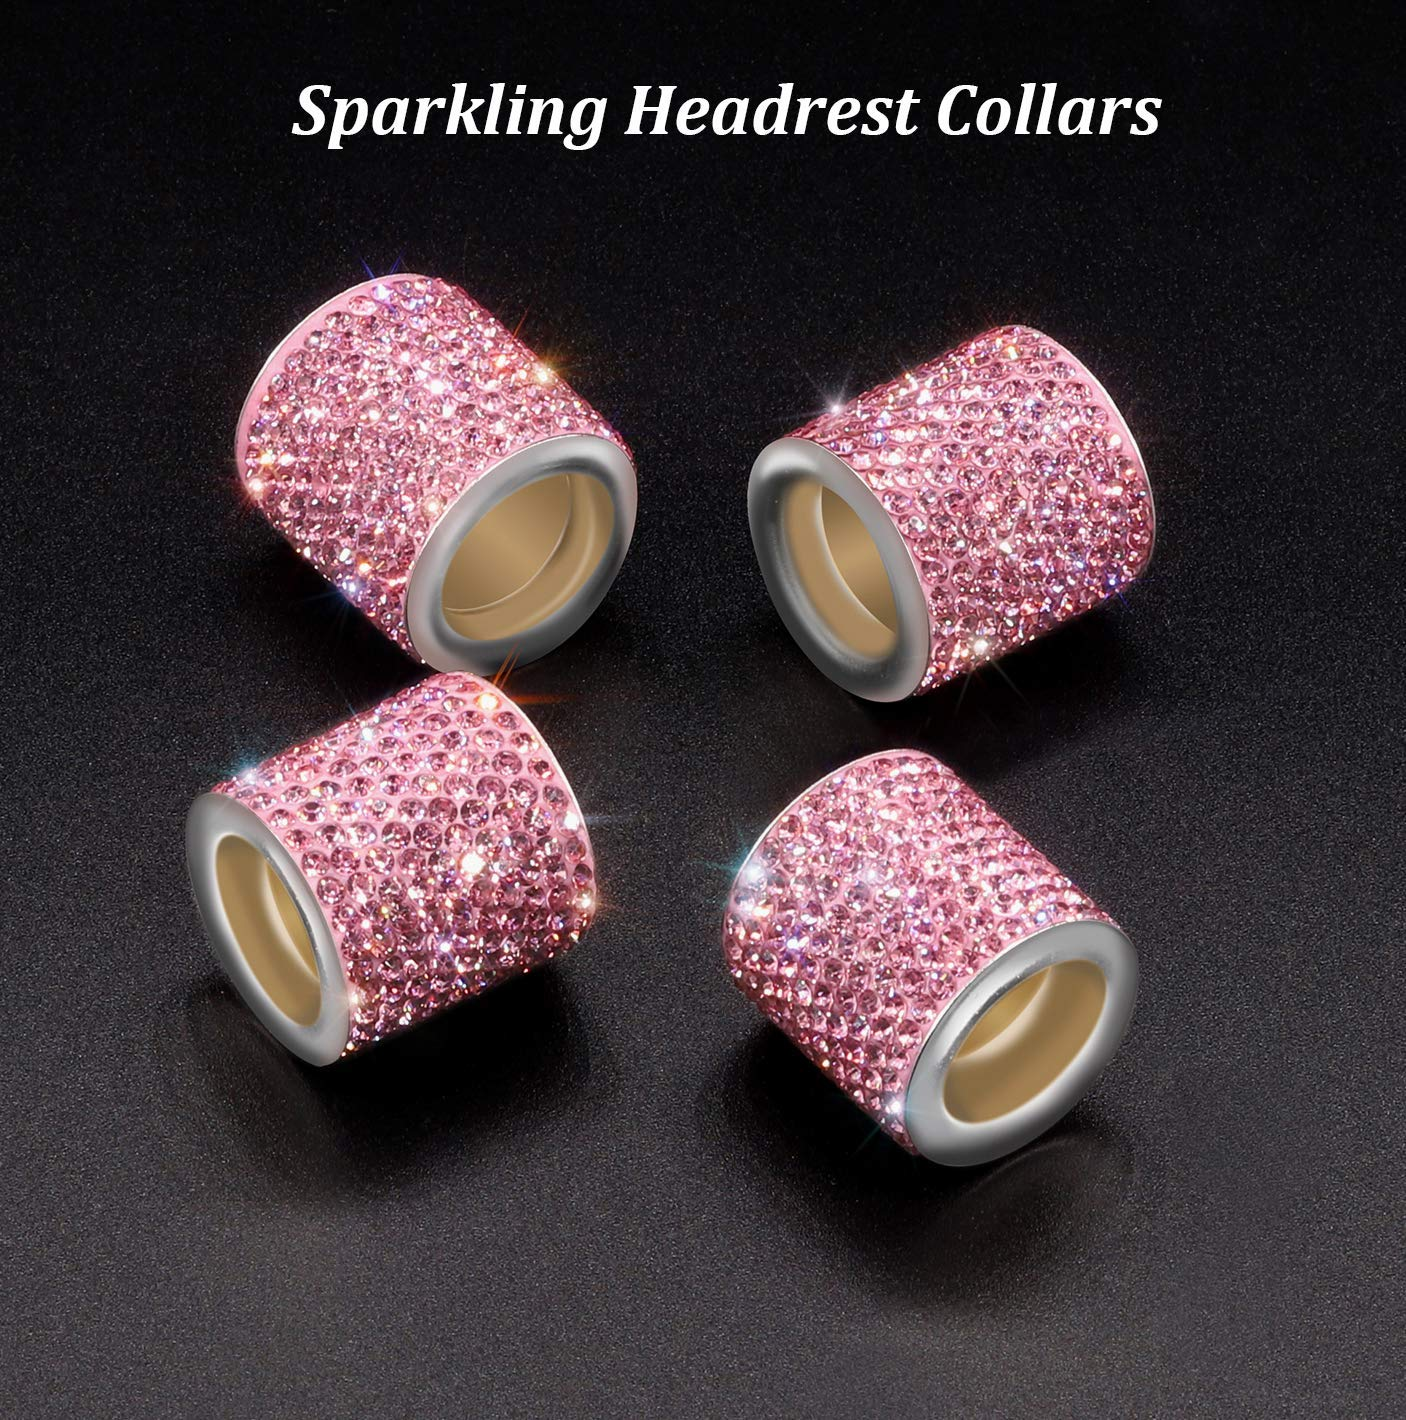 4 Pack, Pink EKIND Crystal Car Seat Headrest Collars Decoration Charms for Auto Car Truck SUV Vehicle